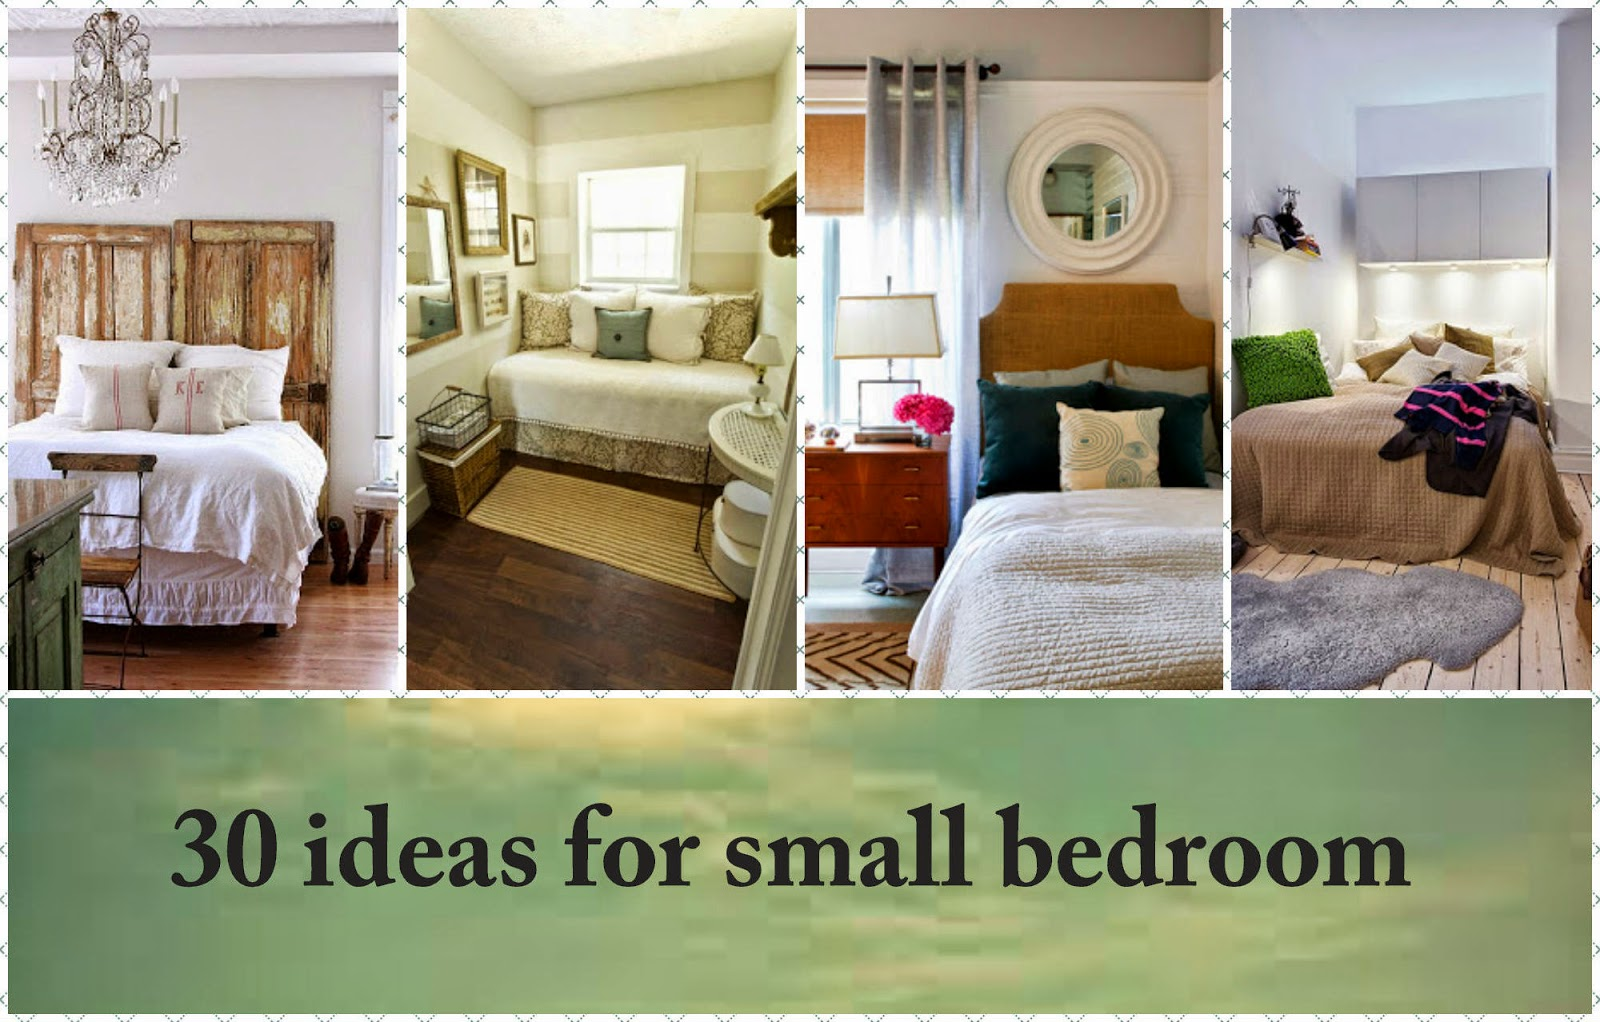 30 ideas for small bedroom